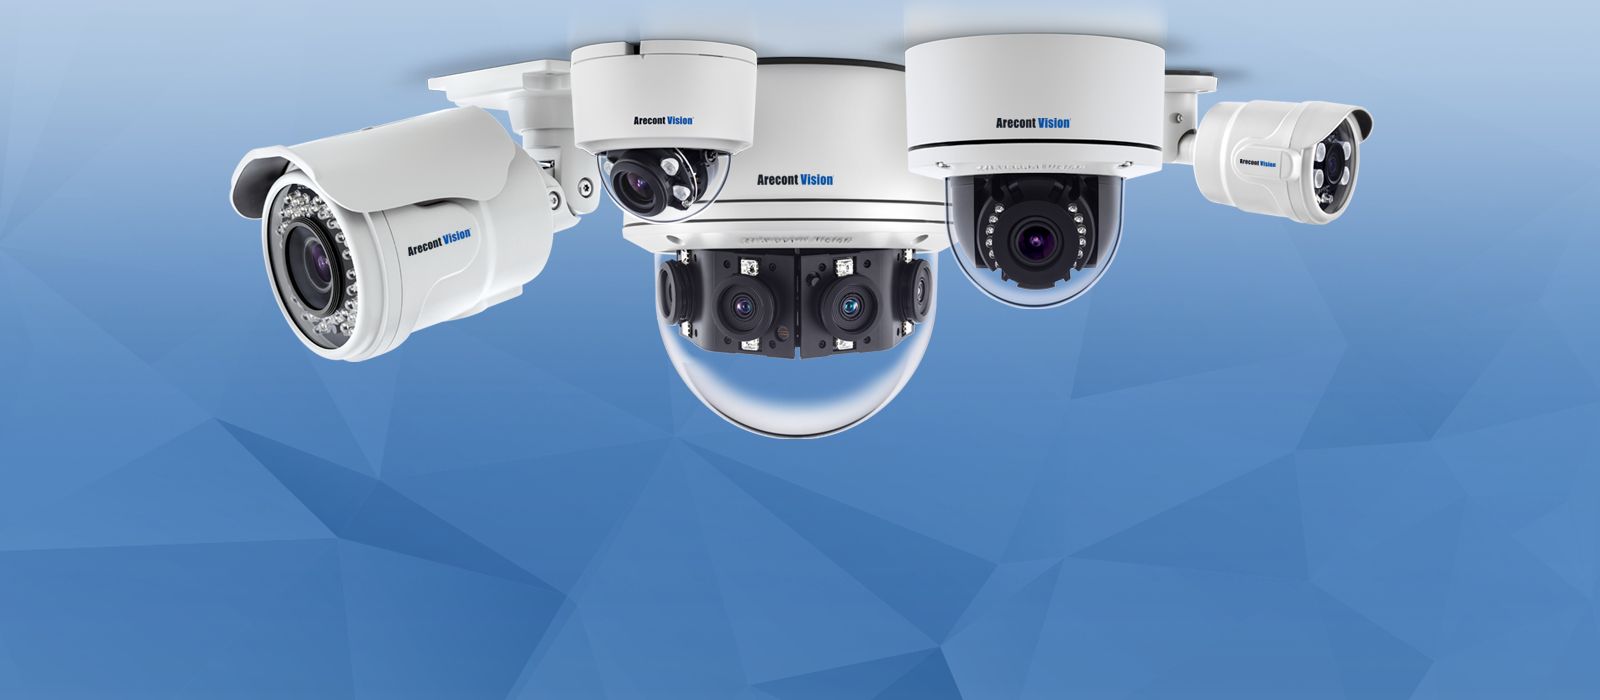 ARECONT VISION AV1355 IP CAMERA DESCARGAR DRIVER